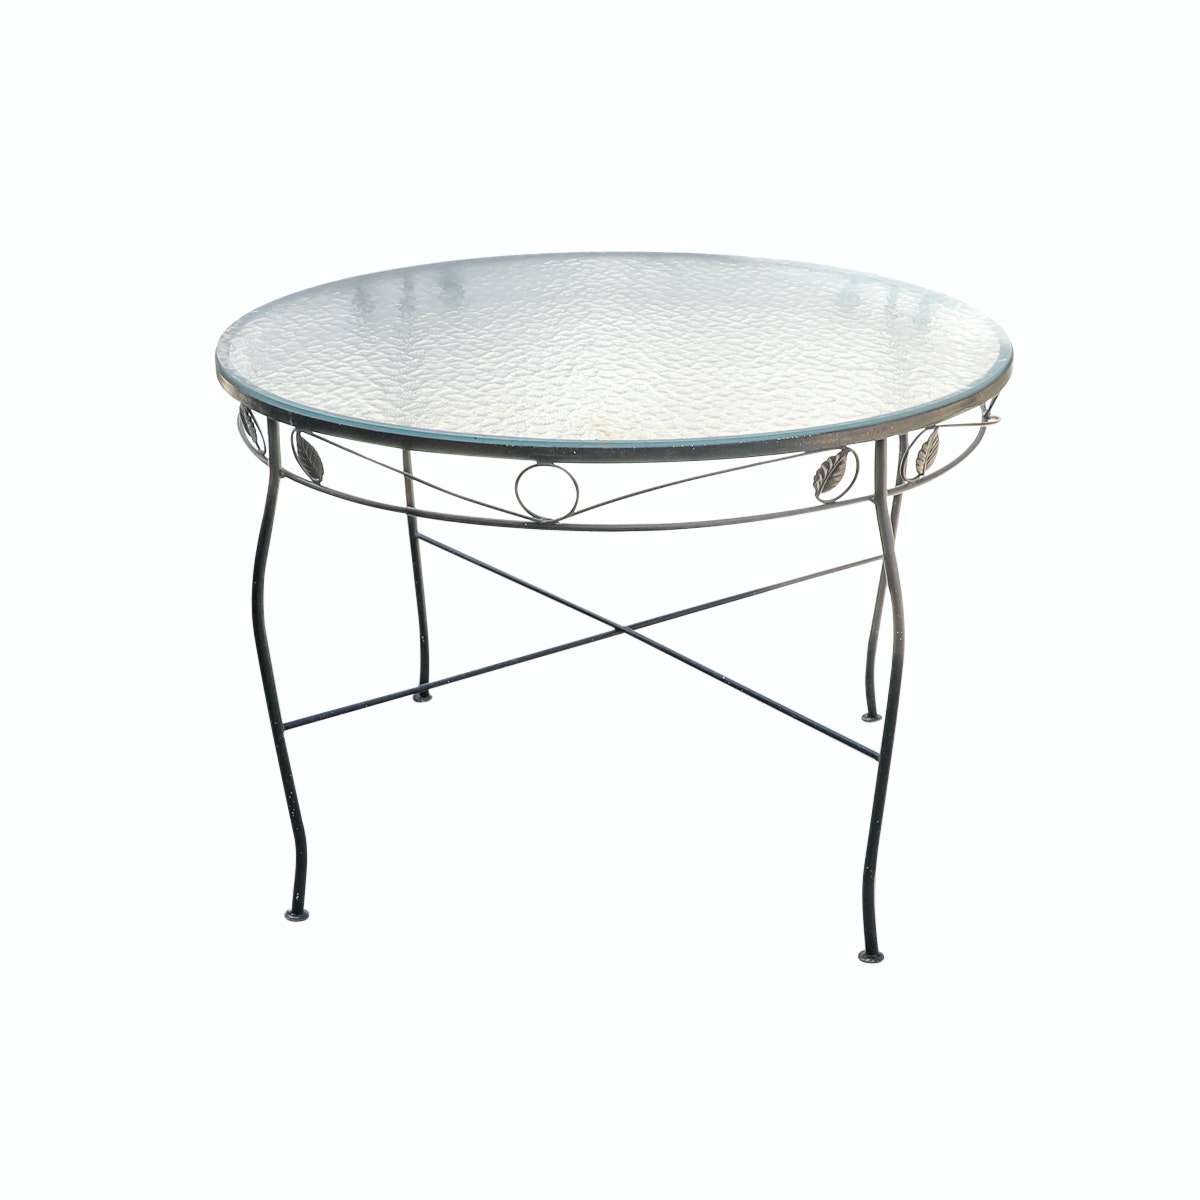 Wrought Iron Patio Table with Glass Top